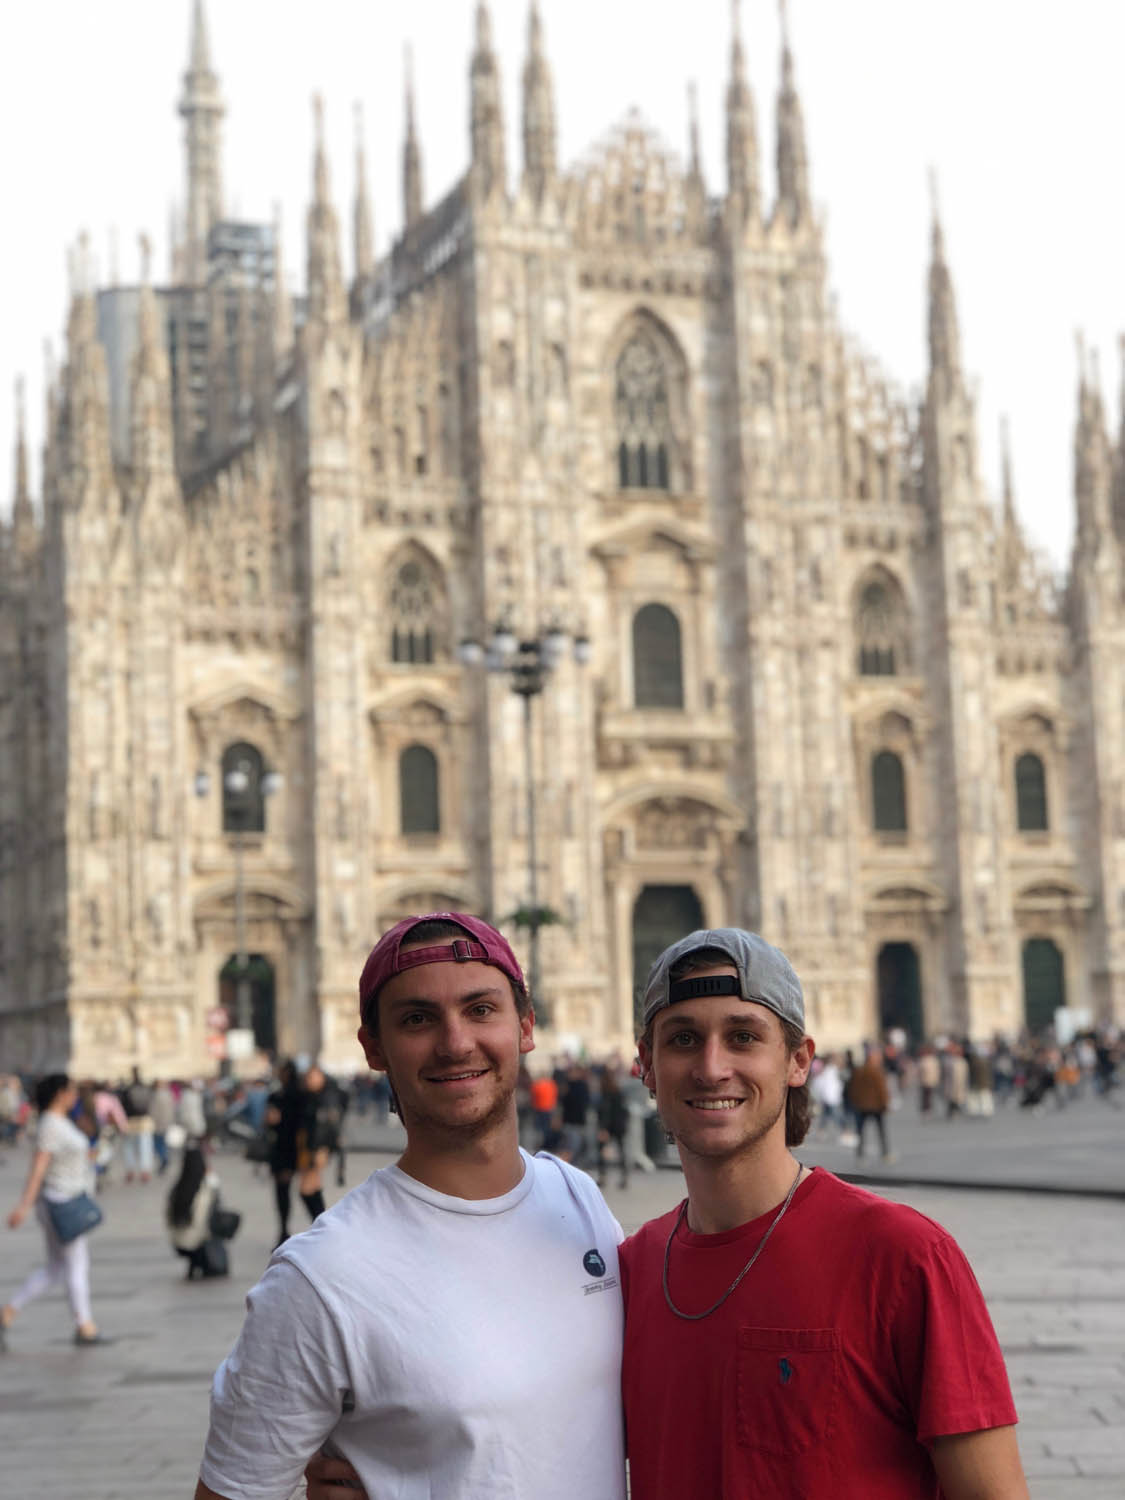 Young men in front of Italian cathedral